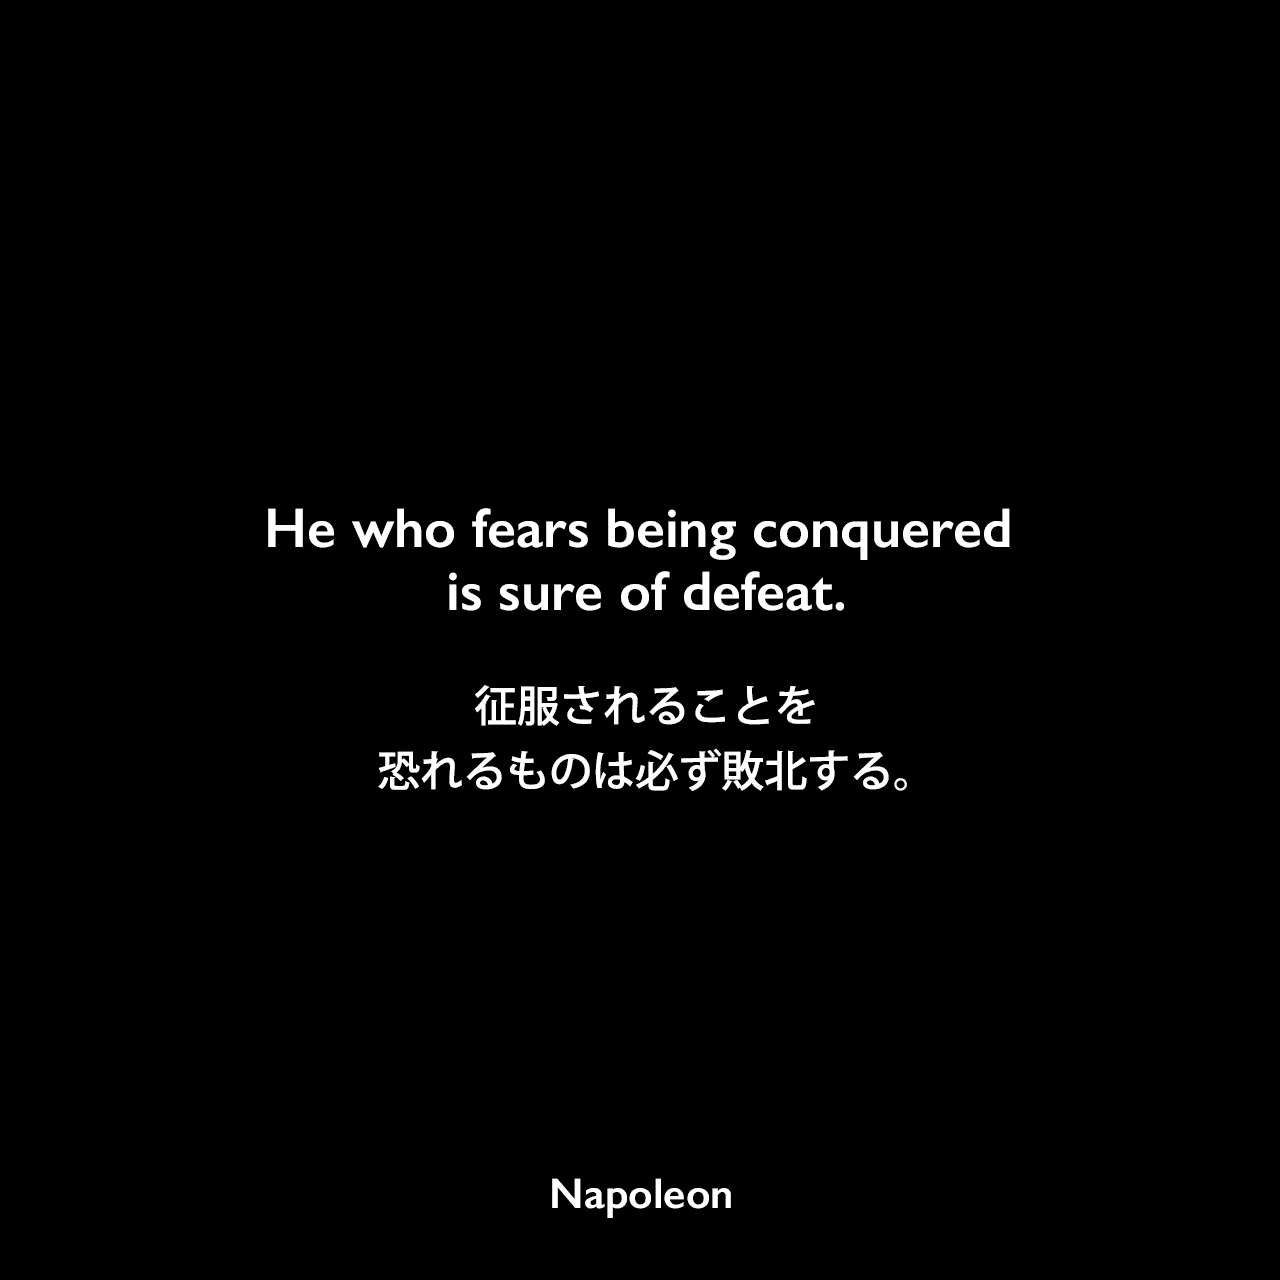 He who fears being conquered is sure of defeat.征服されることを恐れるものは必ず敗北する。- ナポレオンの著書「Political Aphorisms: Moral And Philosophical Thoughts Of The Emperor Napoleon」よりNapoleon